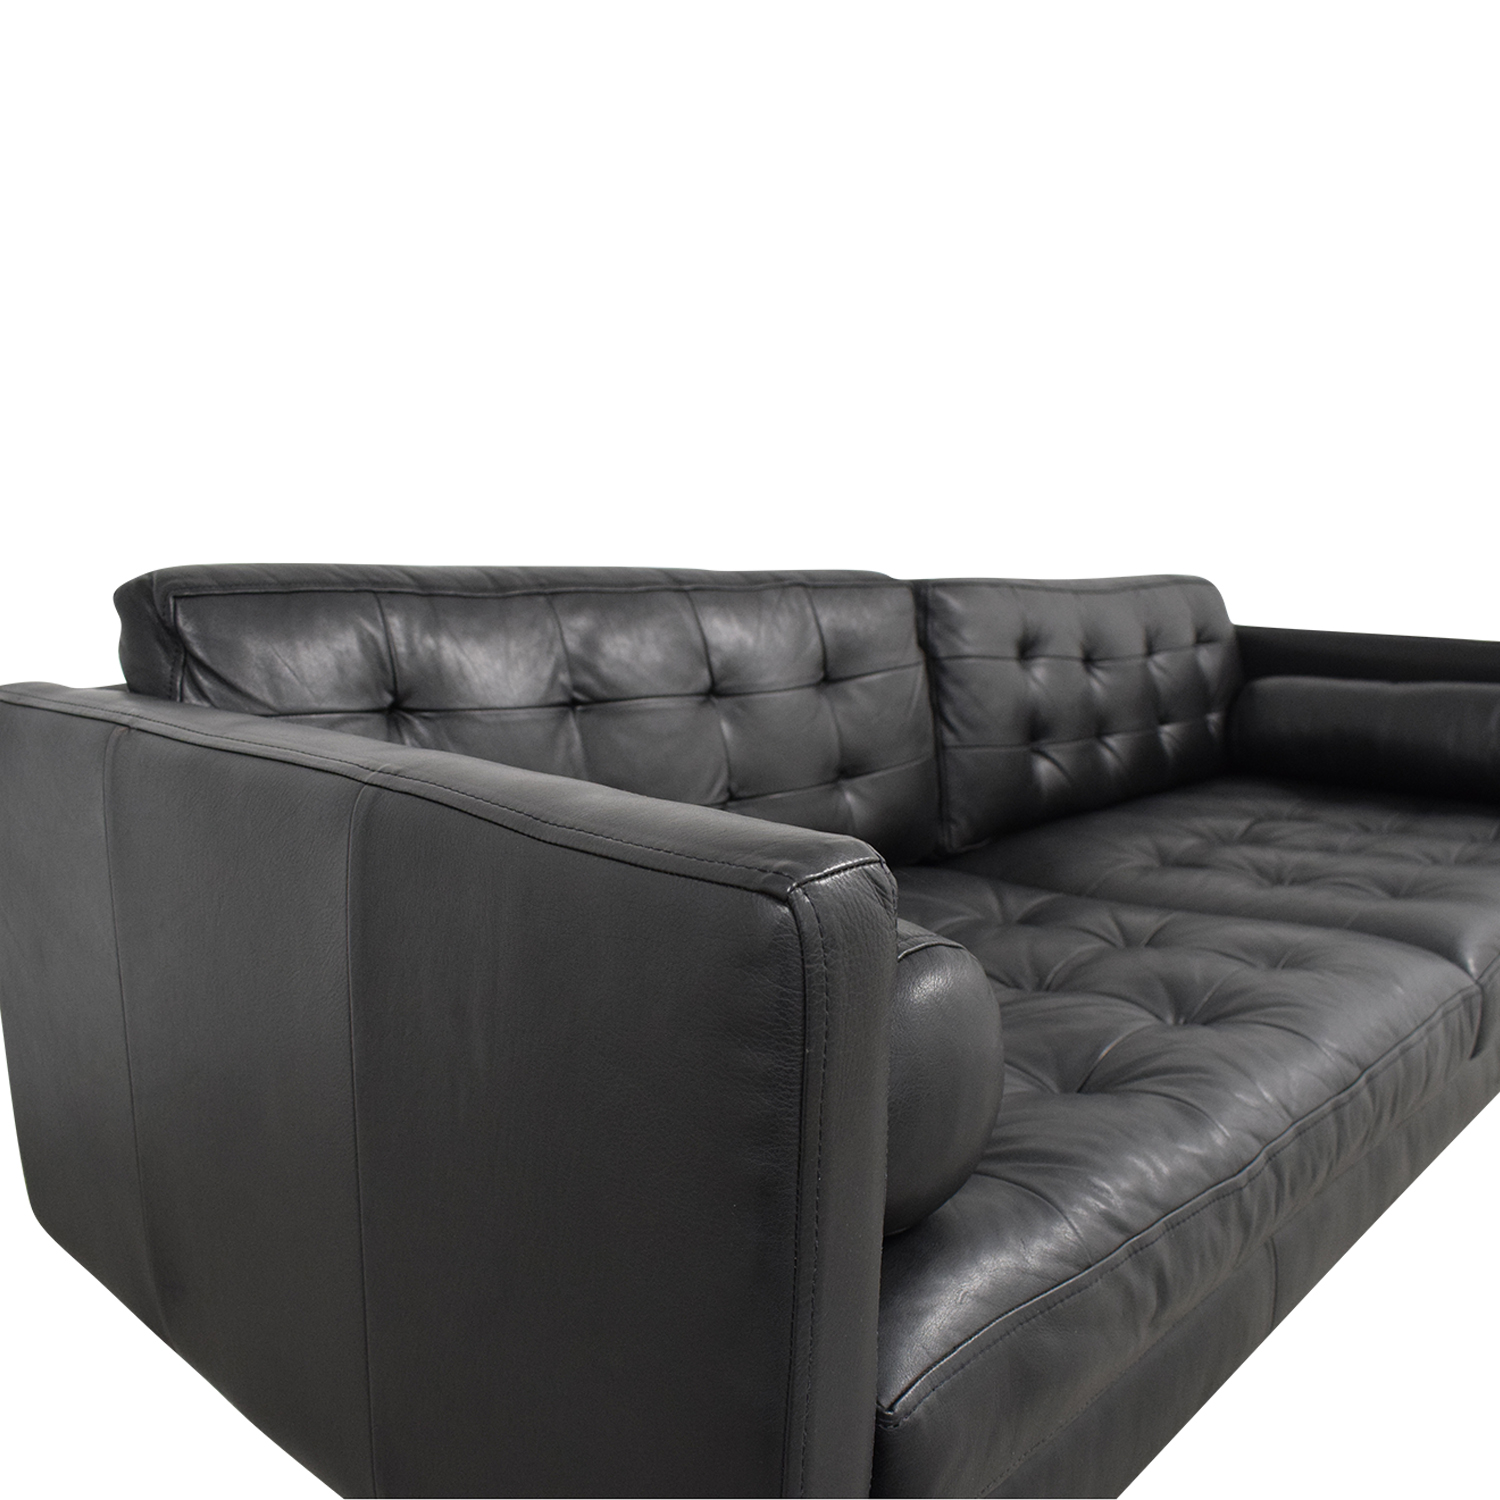 Tufted Mid Century Lounge Sofa for sale